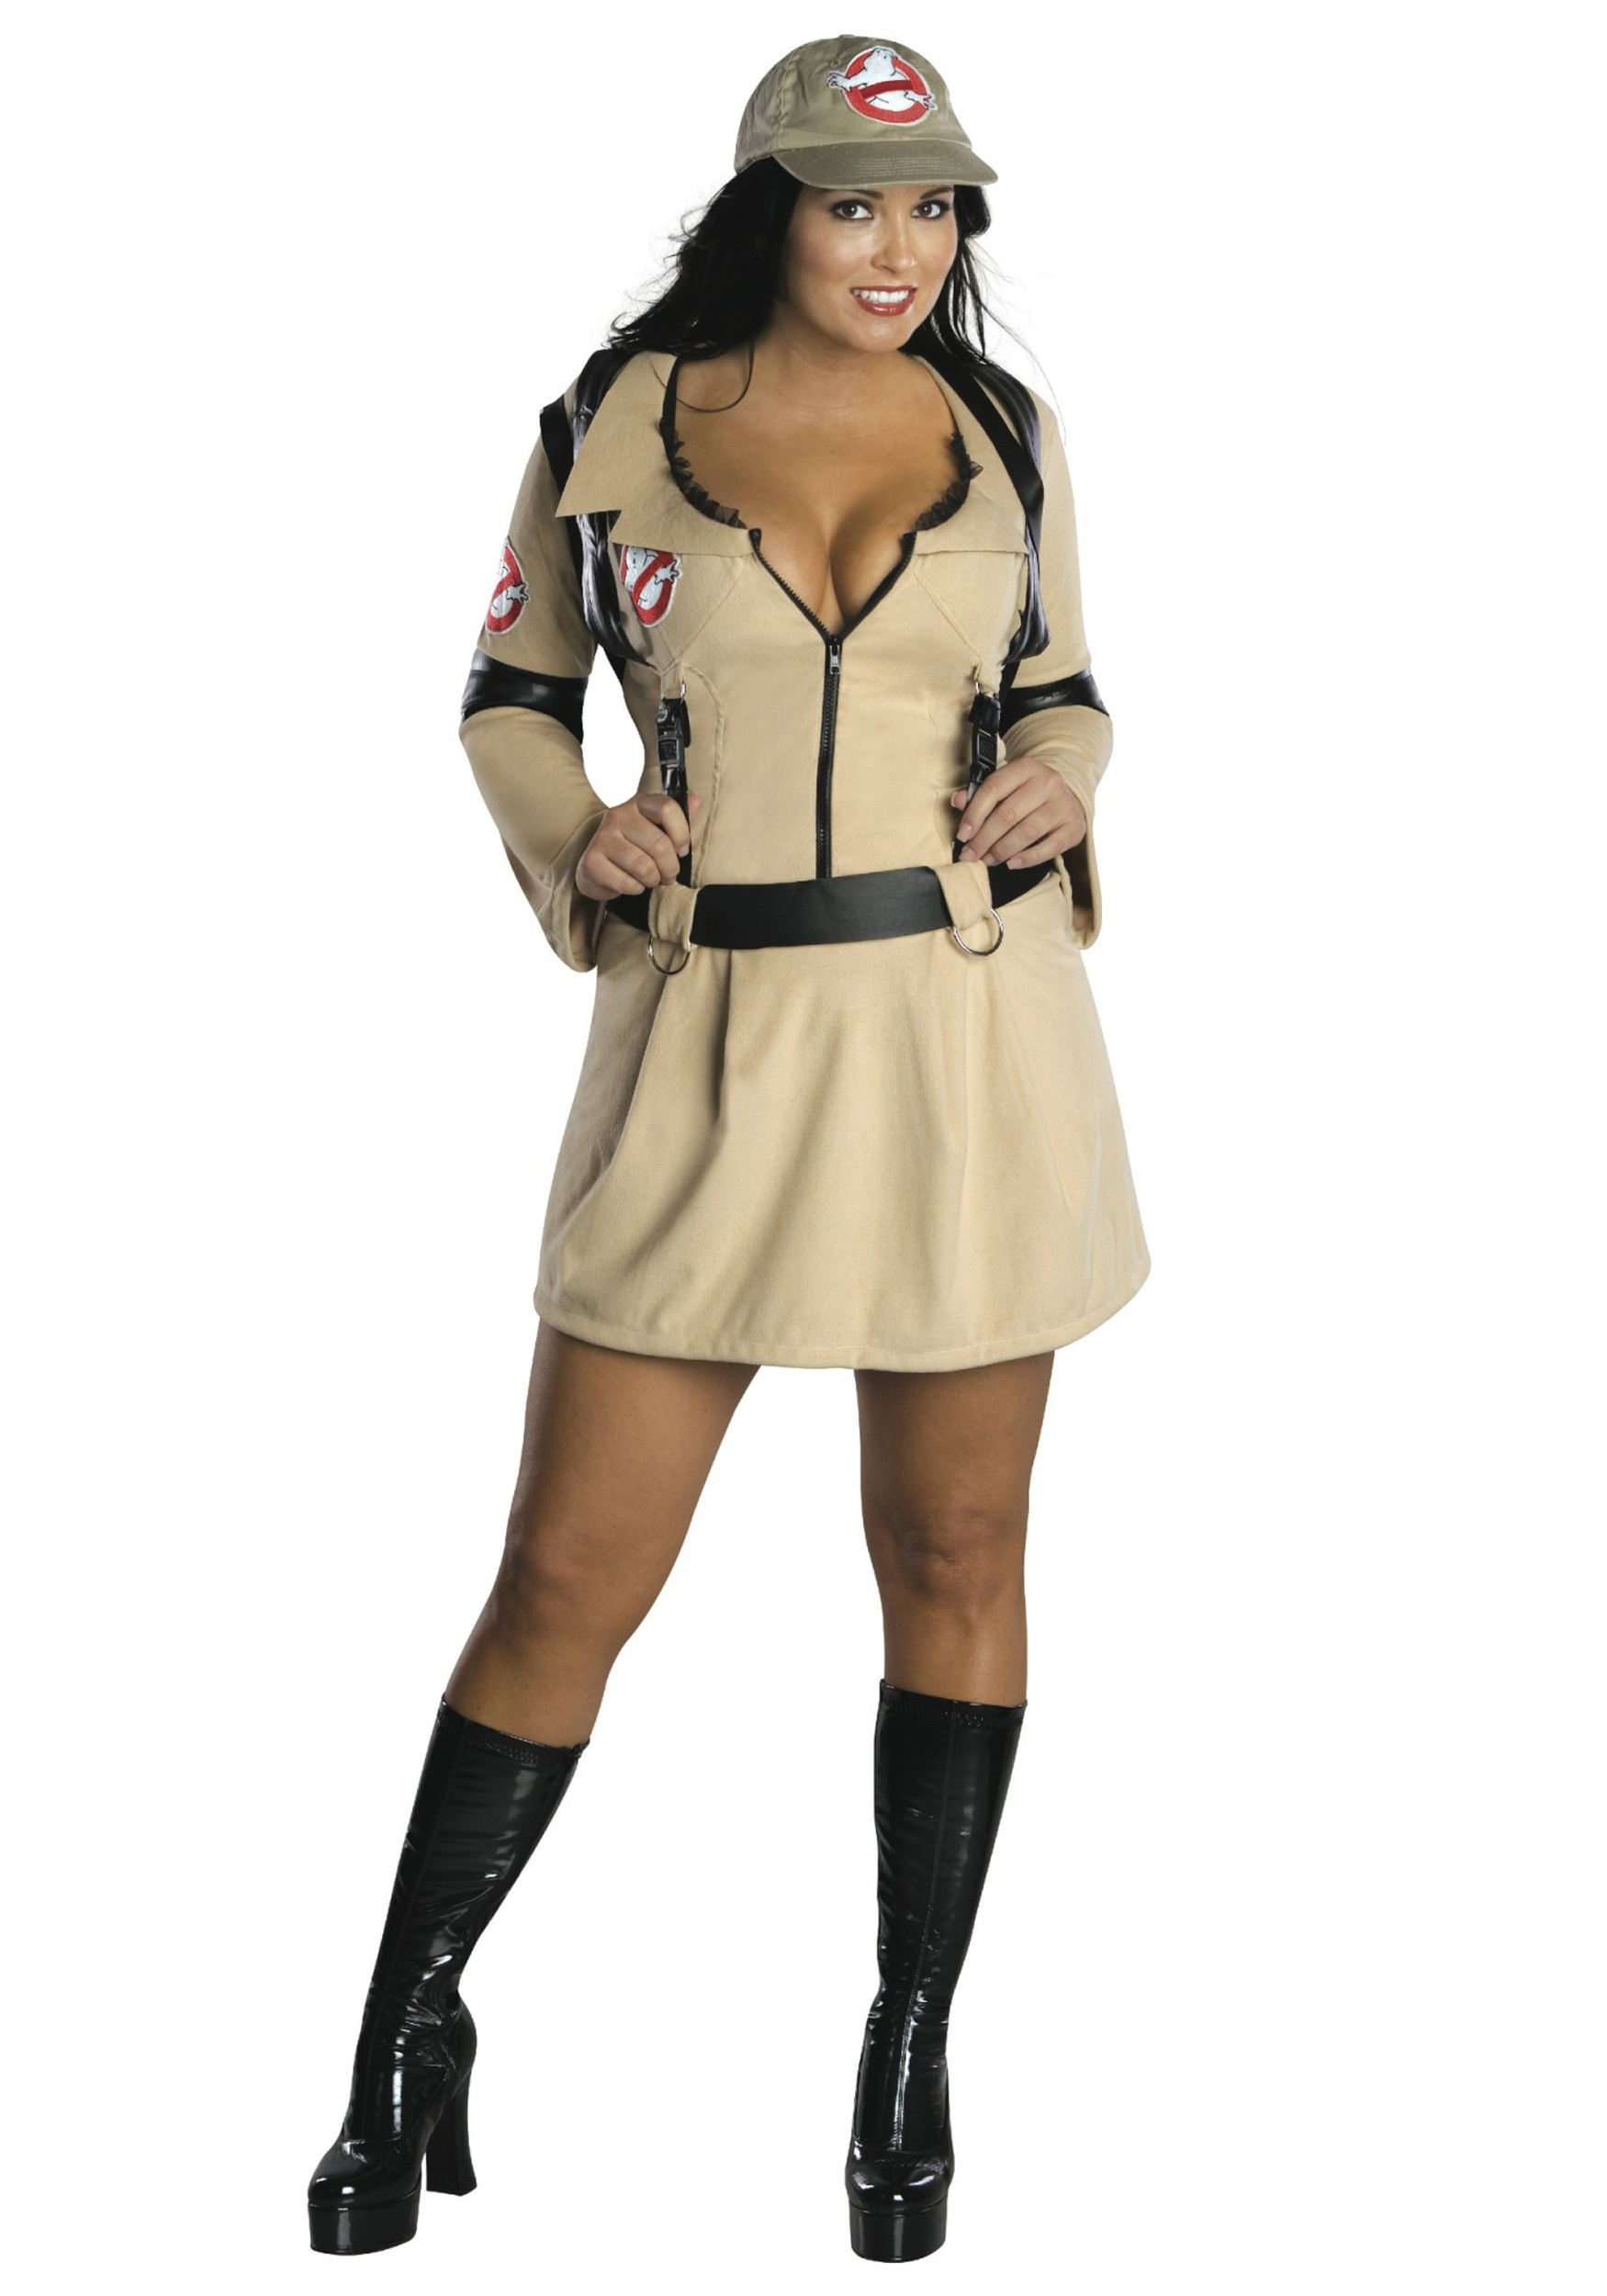 Sexy Ghostbuster Plus Size Costume Adult Ghostbusters Costume